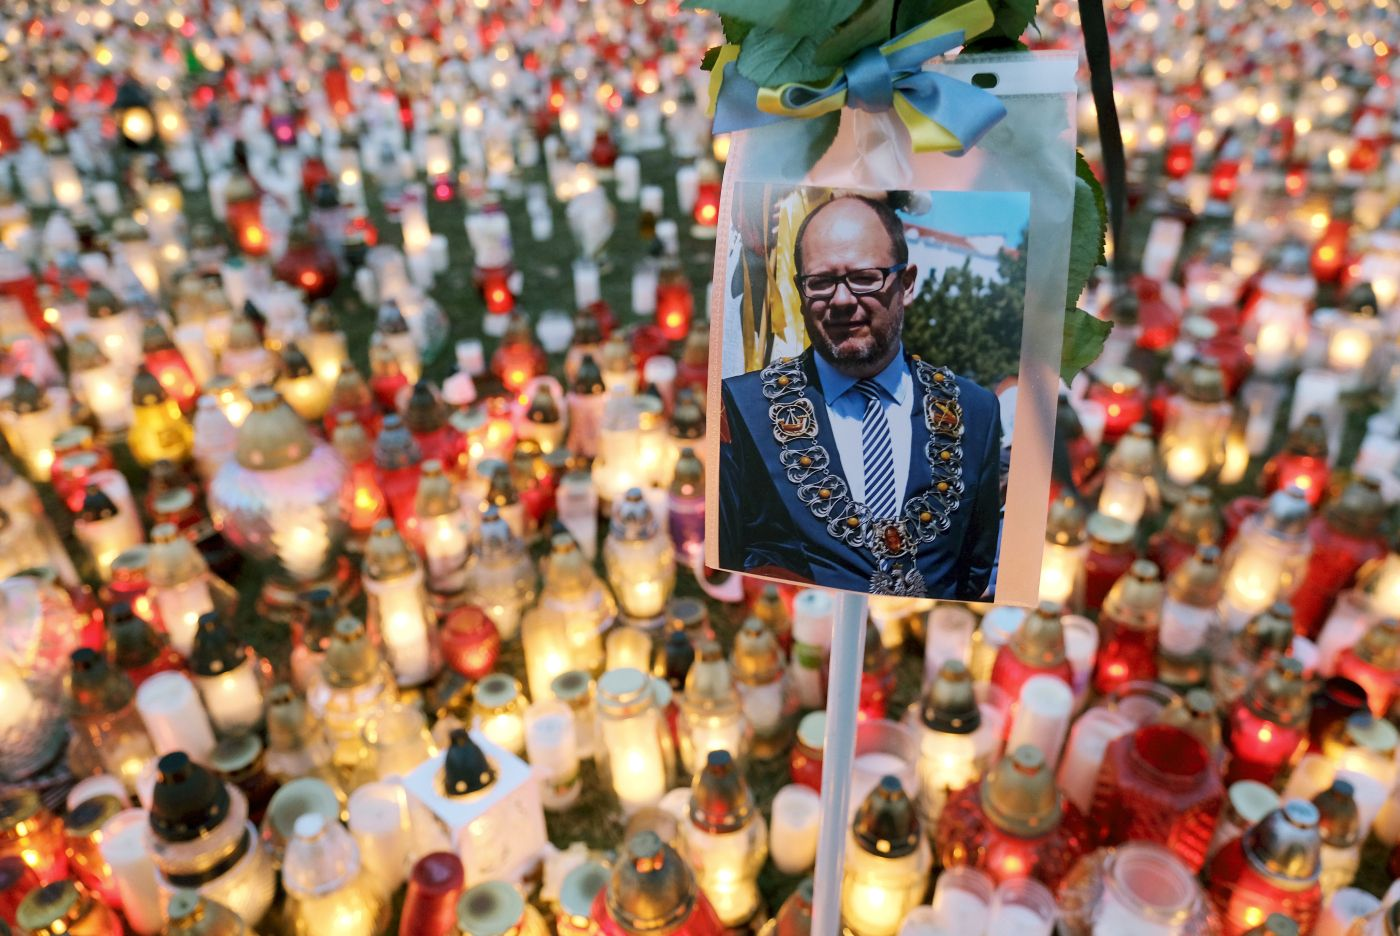 GDANSK, POLAND - JANUARY 17: A photograph of murdered Gdansk mayor Pawel Adamowicz hangs over a sea of candles left by mourners on January 17, 2019 in Gdansk, Poland. Adamowicz was stabbed on stage while attending a charity event in Gdansk last Sunday and died a day later of his injuries. The suspect is a 27-year-old man with a criminal record who was taken into custody. The coffin carrying Adamowicz's body is to be displayed in the European Solidarity Centre later today, where the public may come to pay last respects. Adamowicz's funeral is scheduled for Saturday.  (Photo by Sean Gallup/Getty Images)